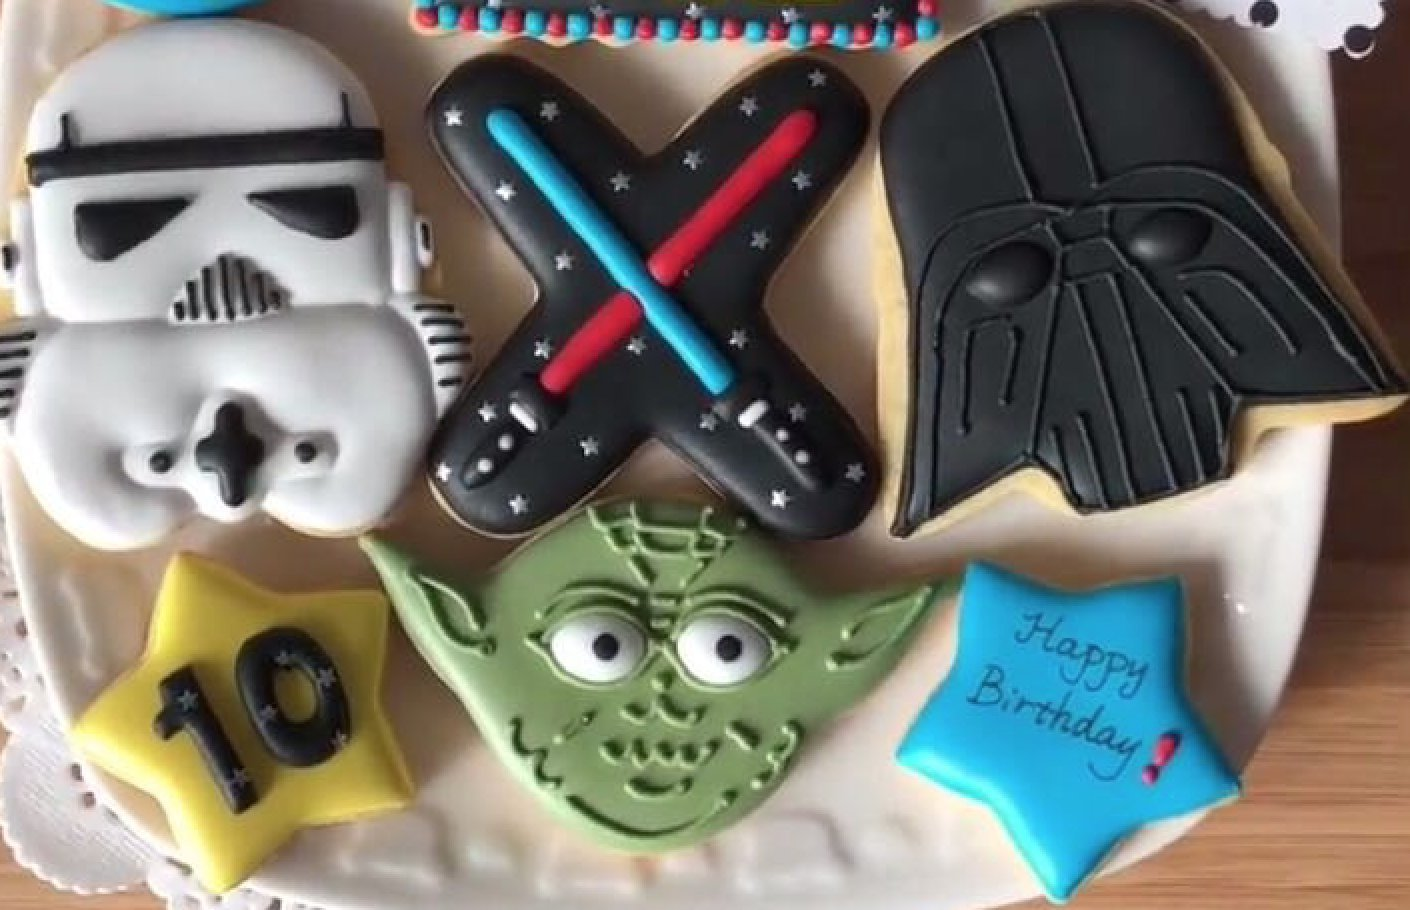 Star Wars Cookie Cutter set with Matching Stencils - American Confections - Yoda, Storm Trooper, Darth Vader - Set of 3